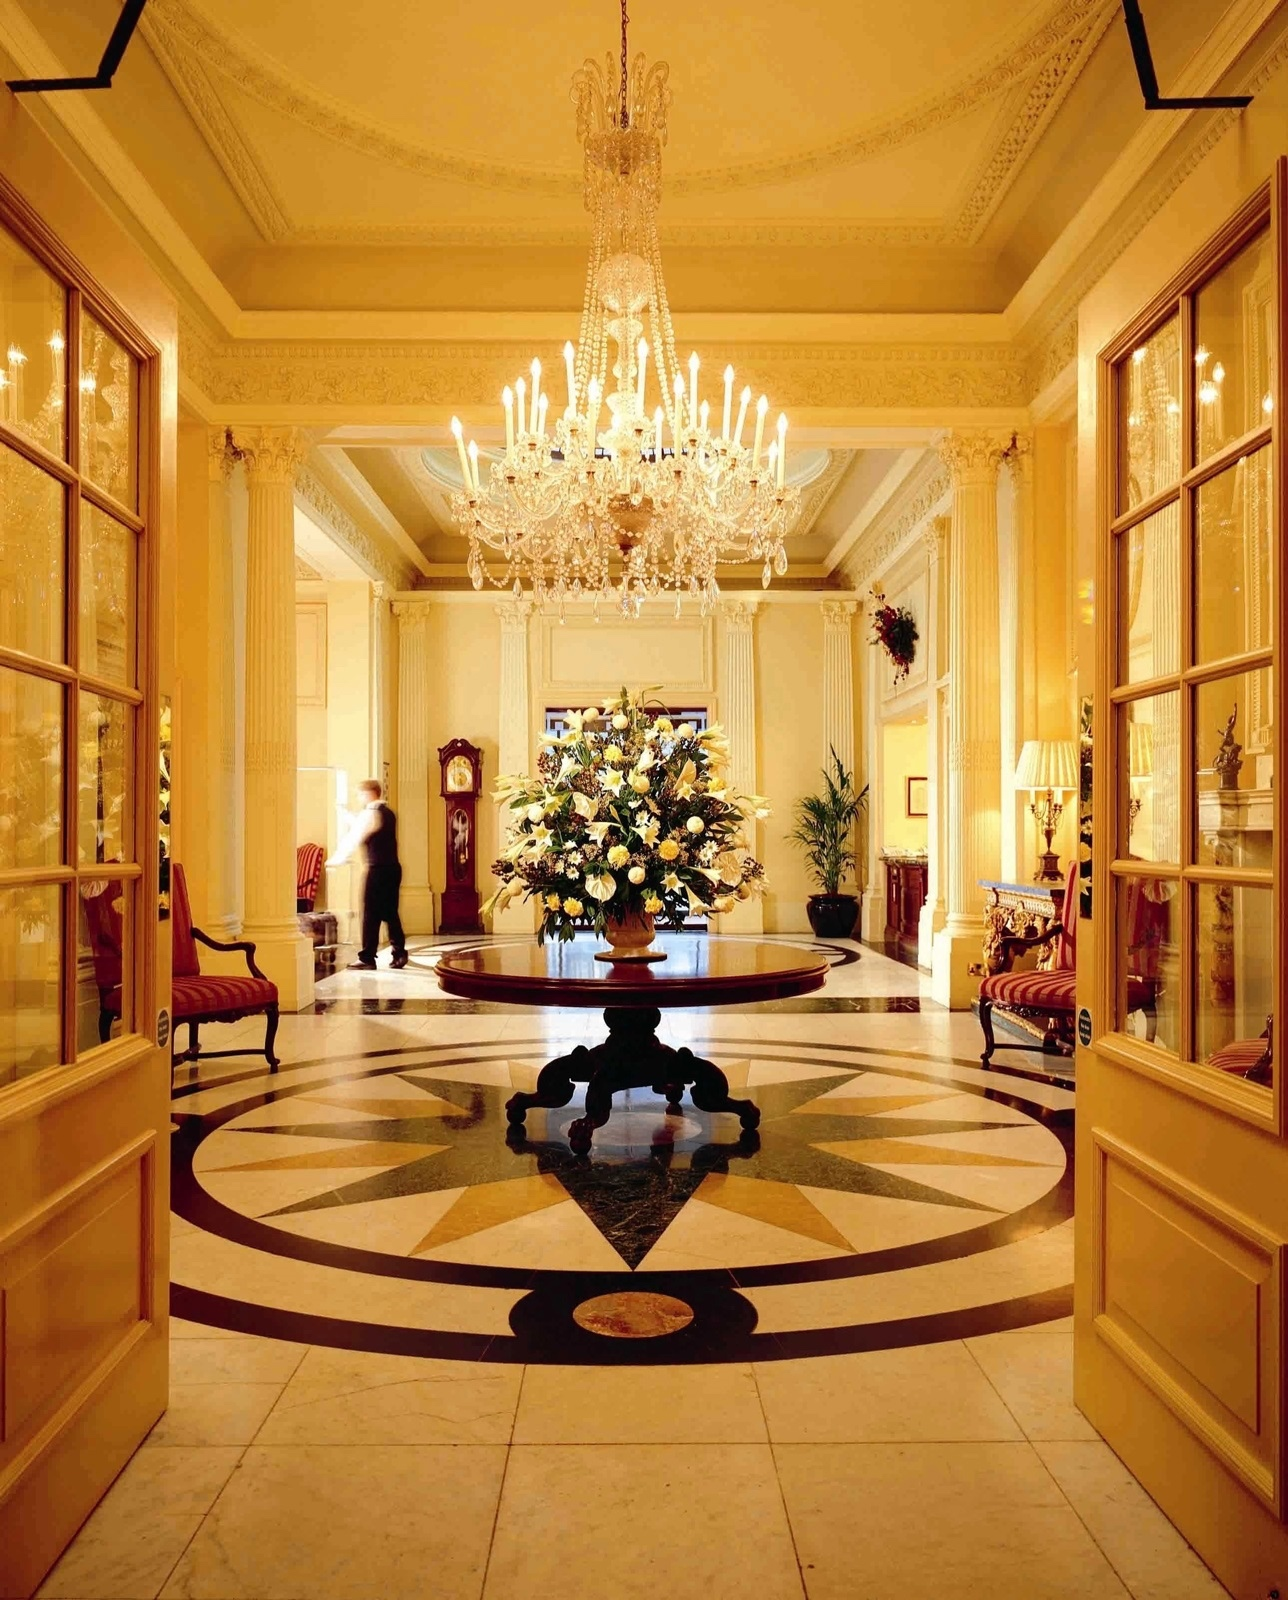 Foyer Hotel : Imperial hotel foyer courtesy english riviera tourism company amy